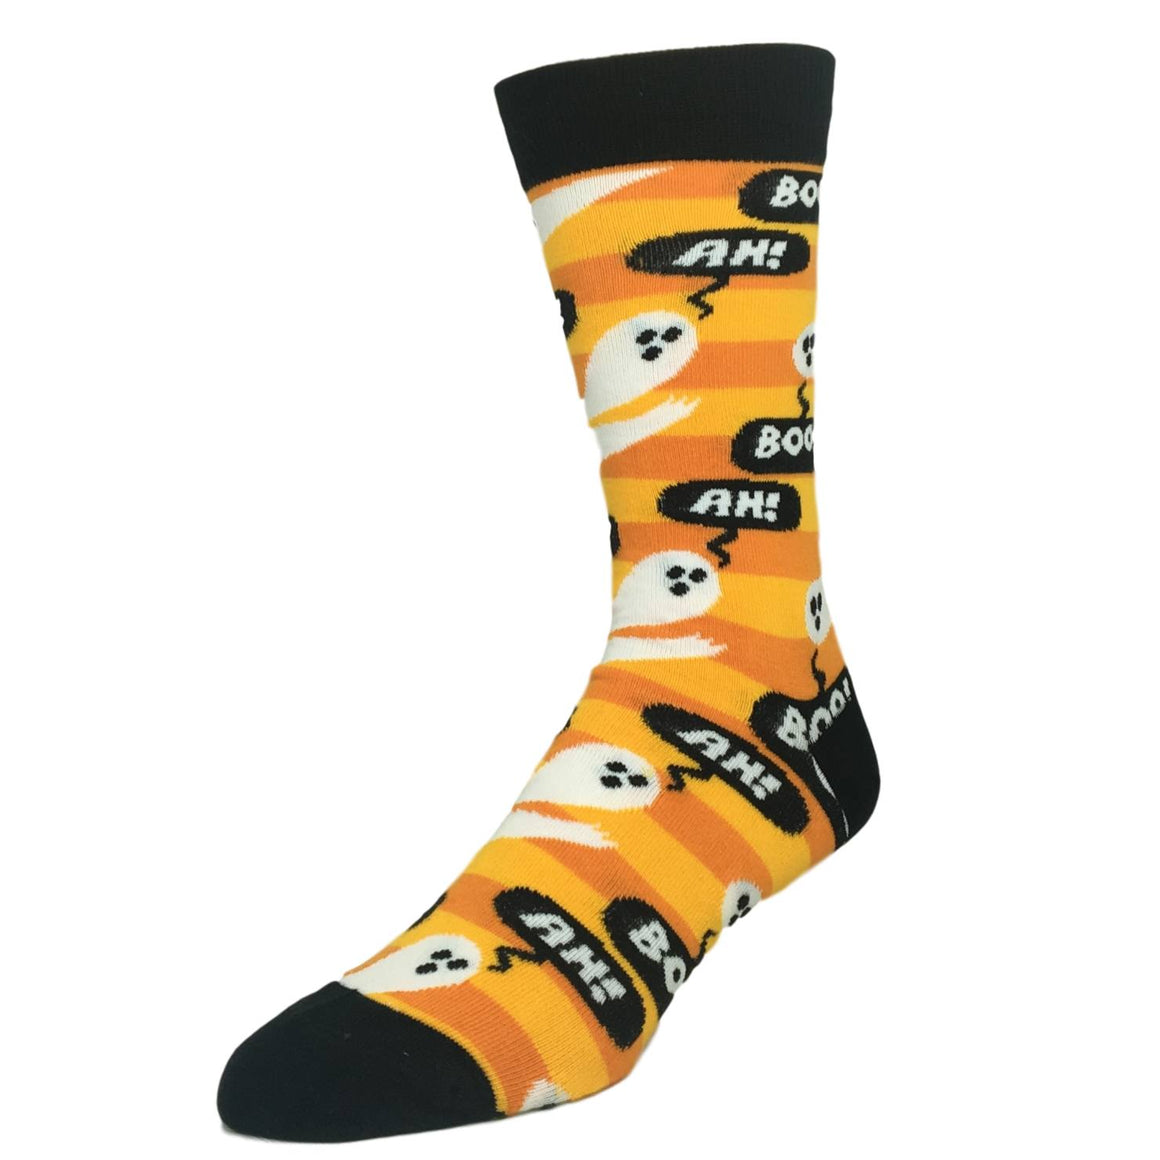 Ghost's Night Out Socks by Oooh Yeah Socks - The Sock Spot